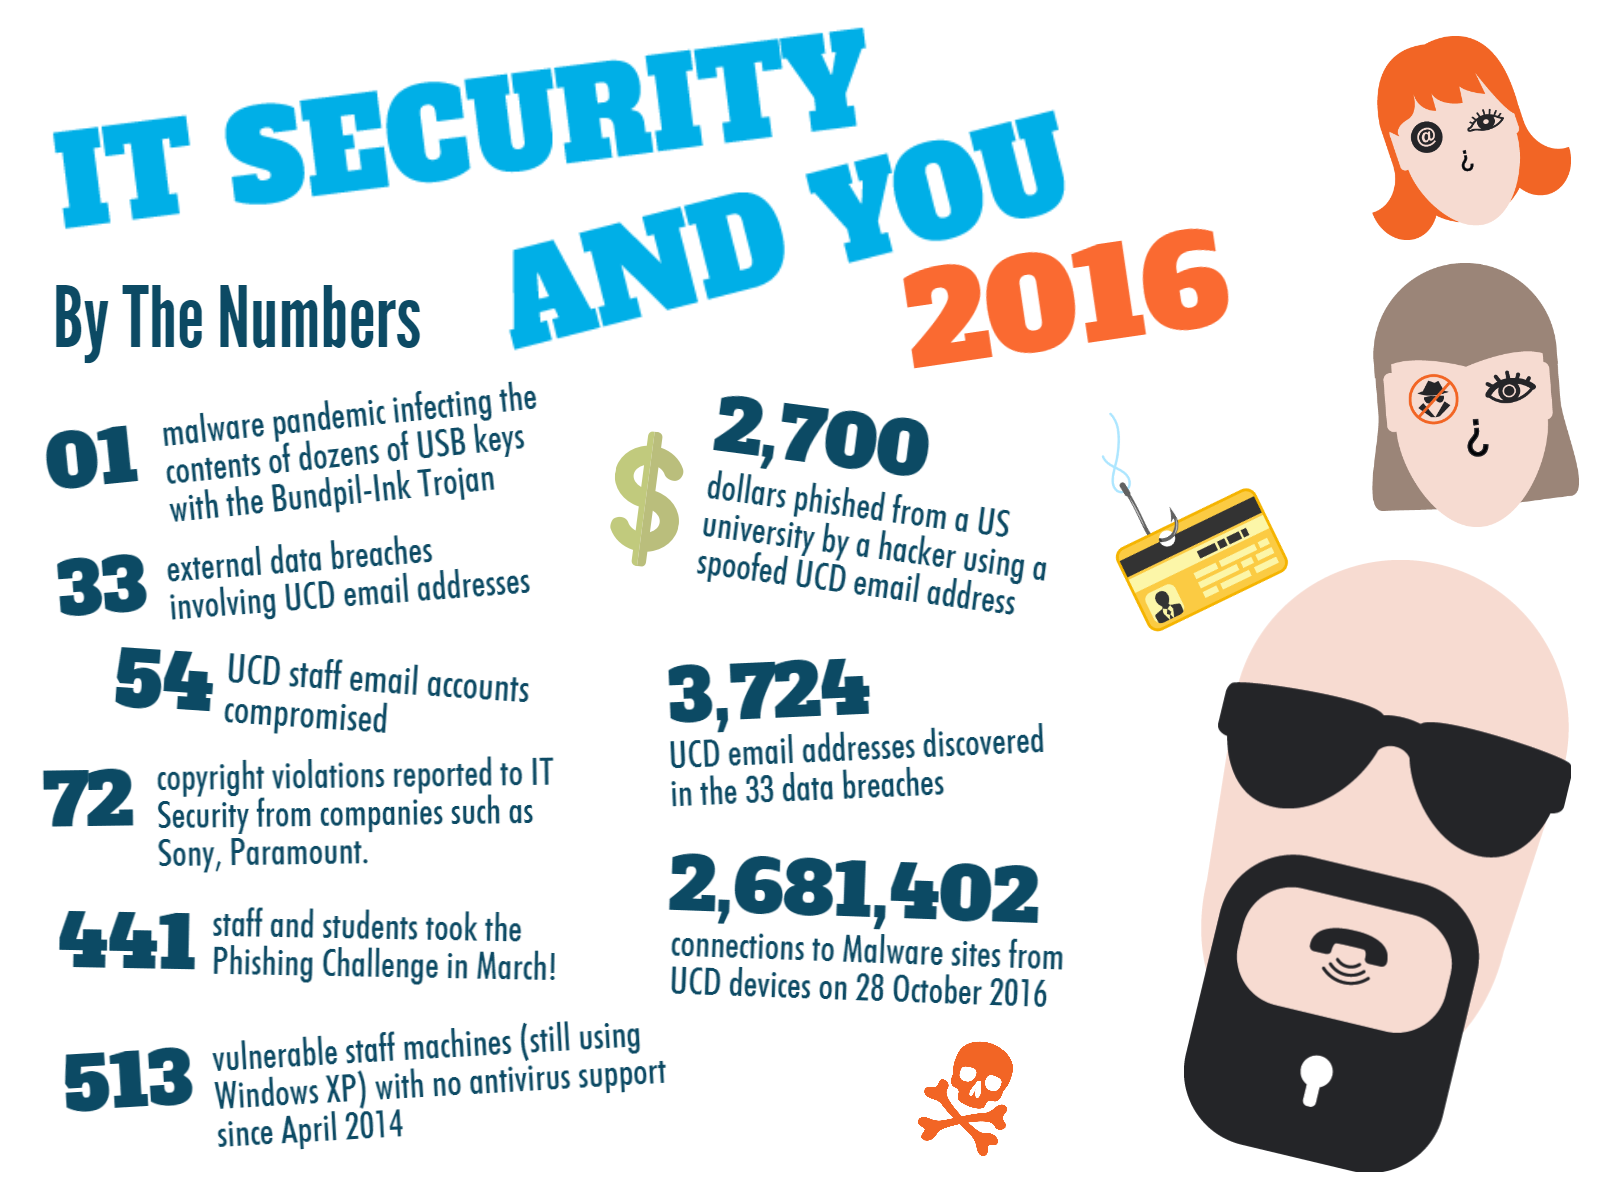 it security & you by the numbers